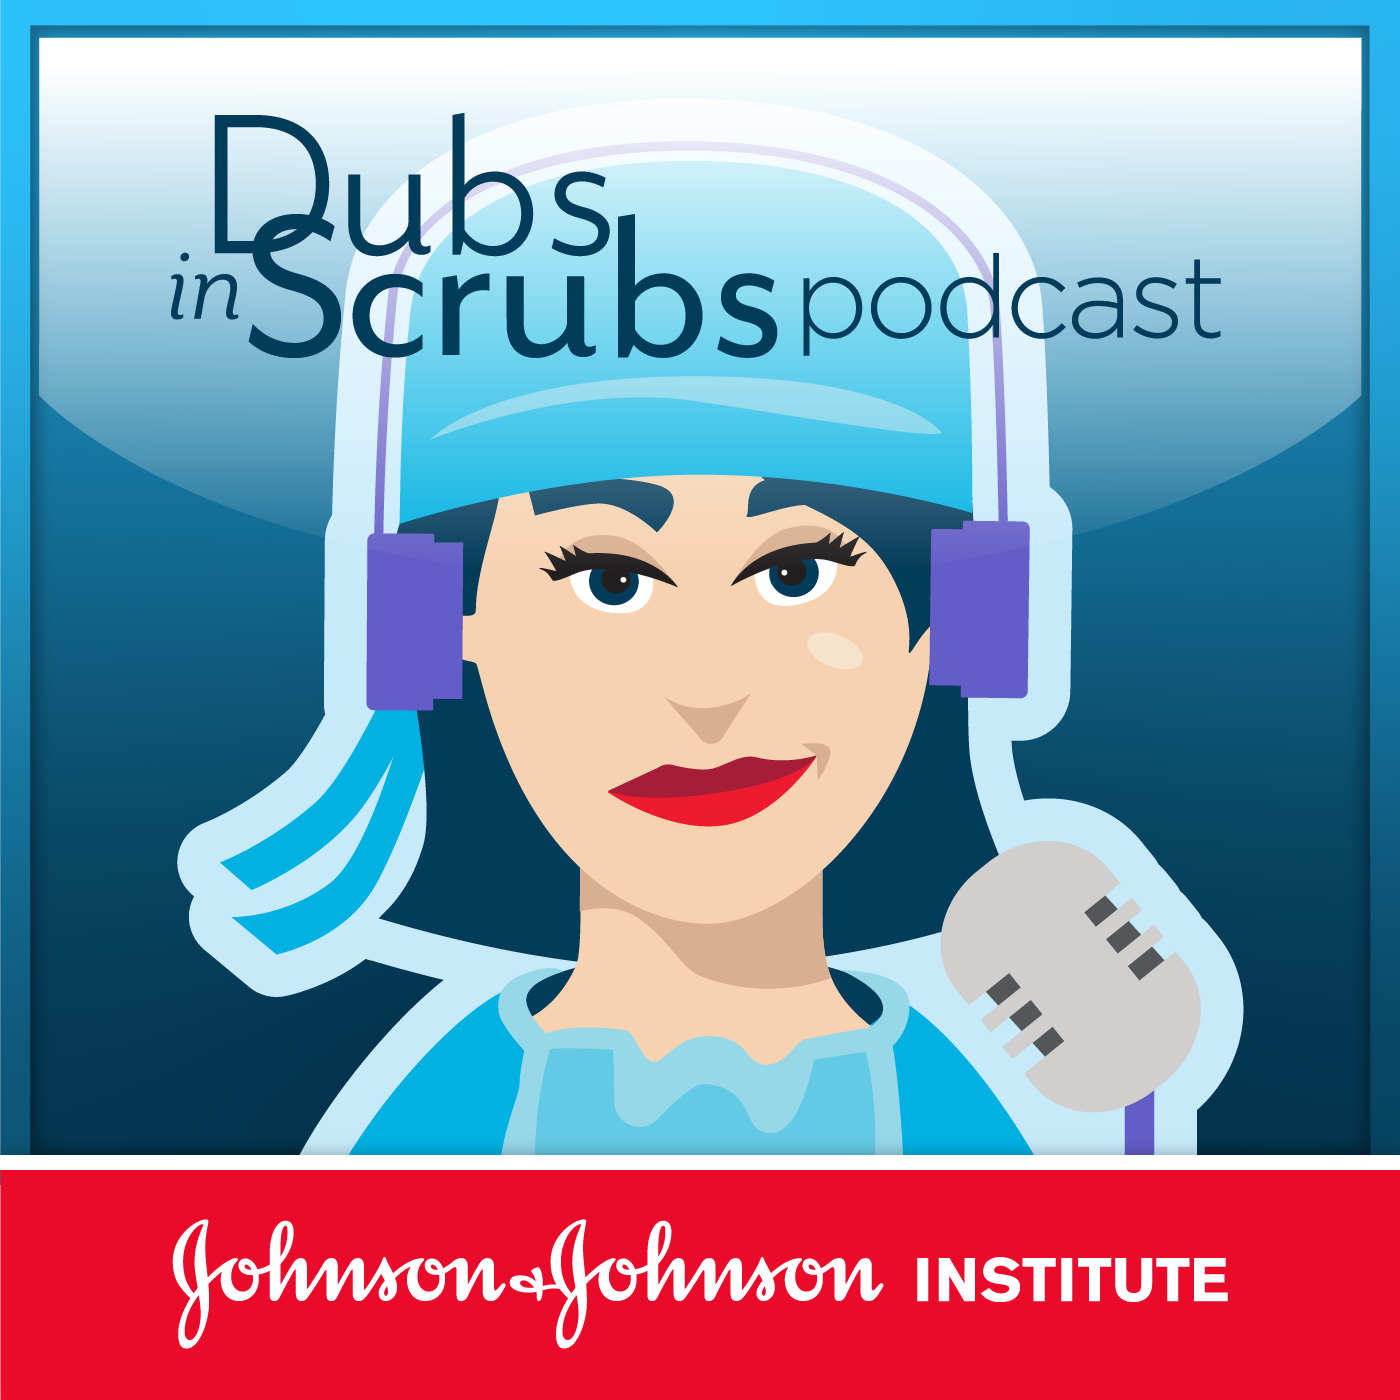 Dubs in Scrubs podcast show image